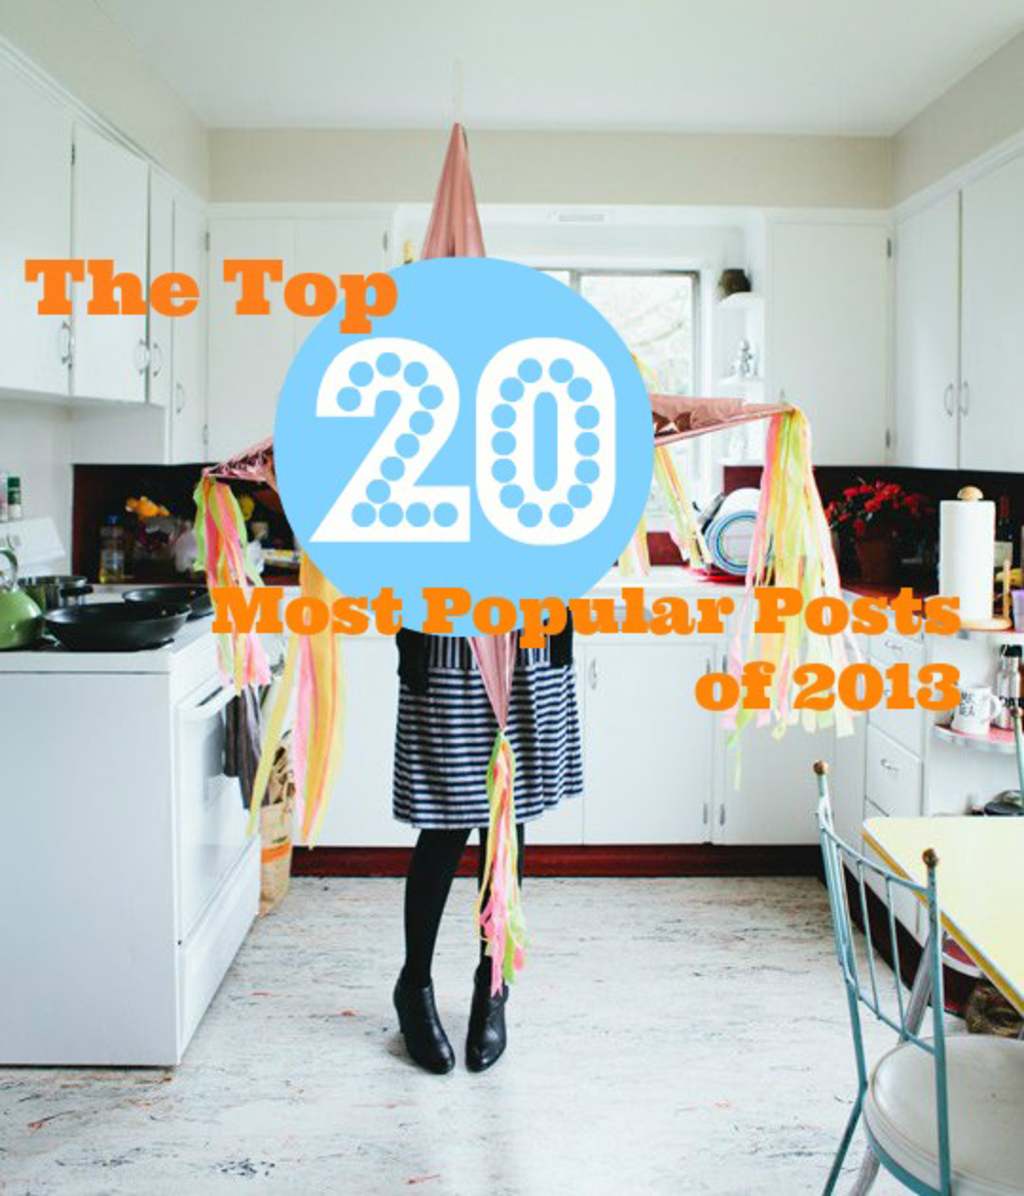 The Top 20: Most Popular Posts of 2013